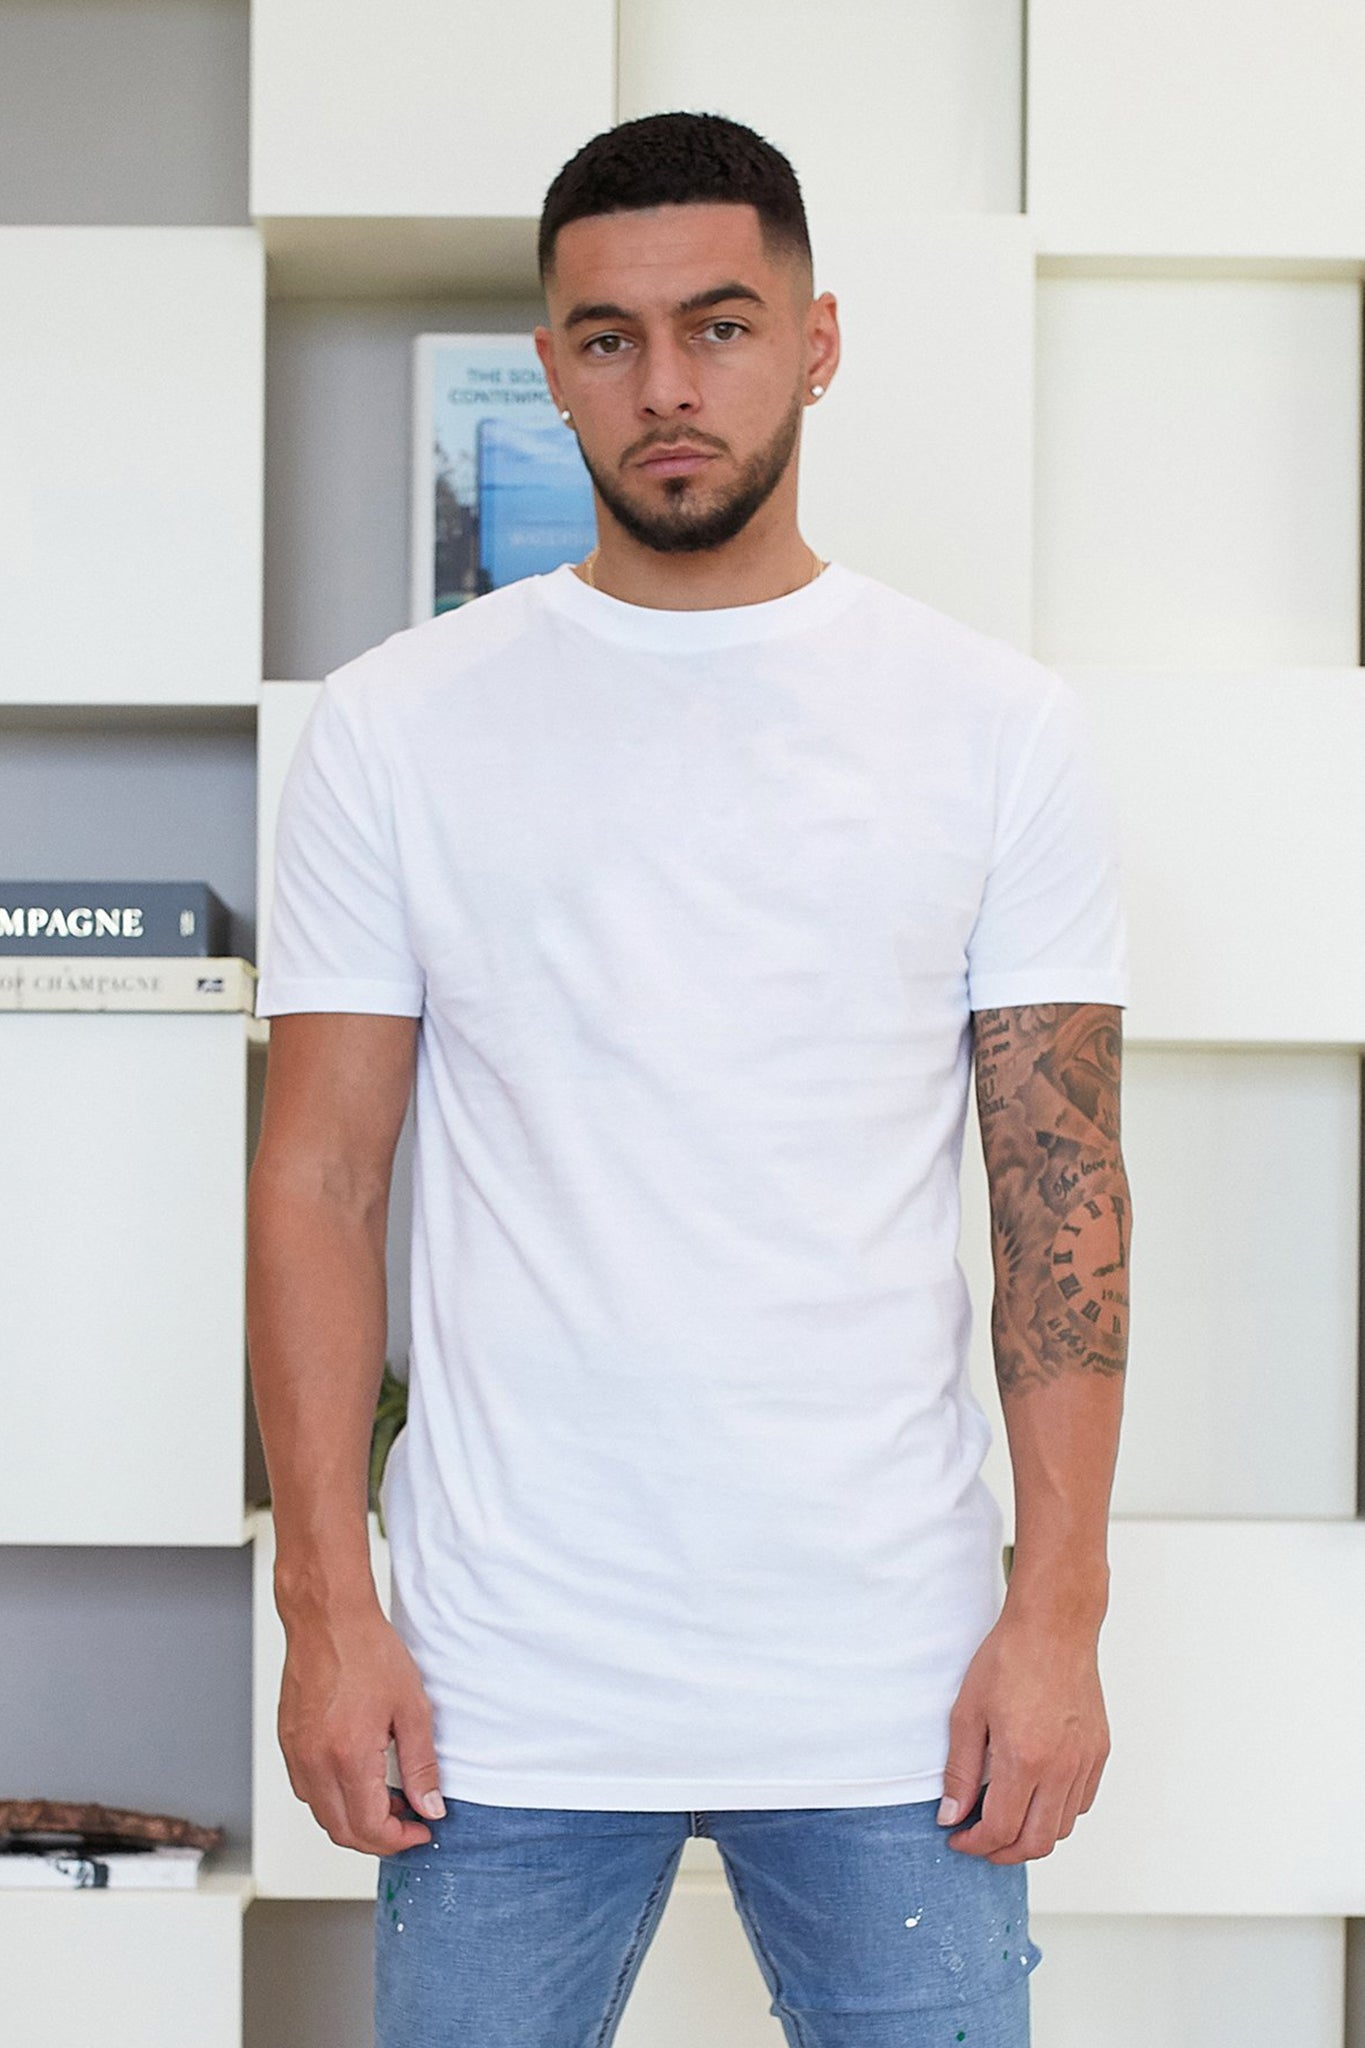 WHITE PREMIUM ESSENTIAL REGULAR FIT T-SHIRT - Illusion Attire